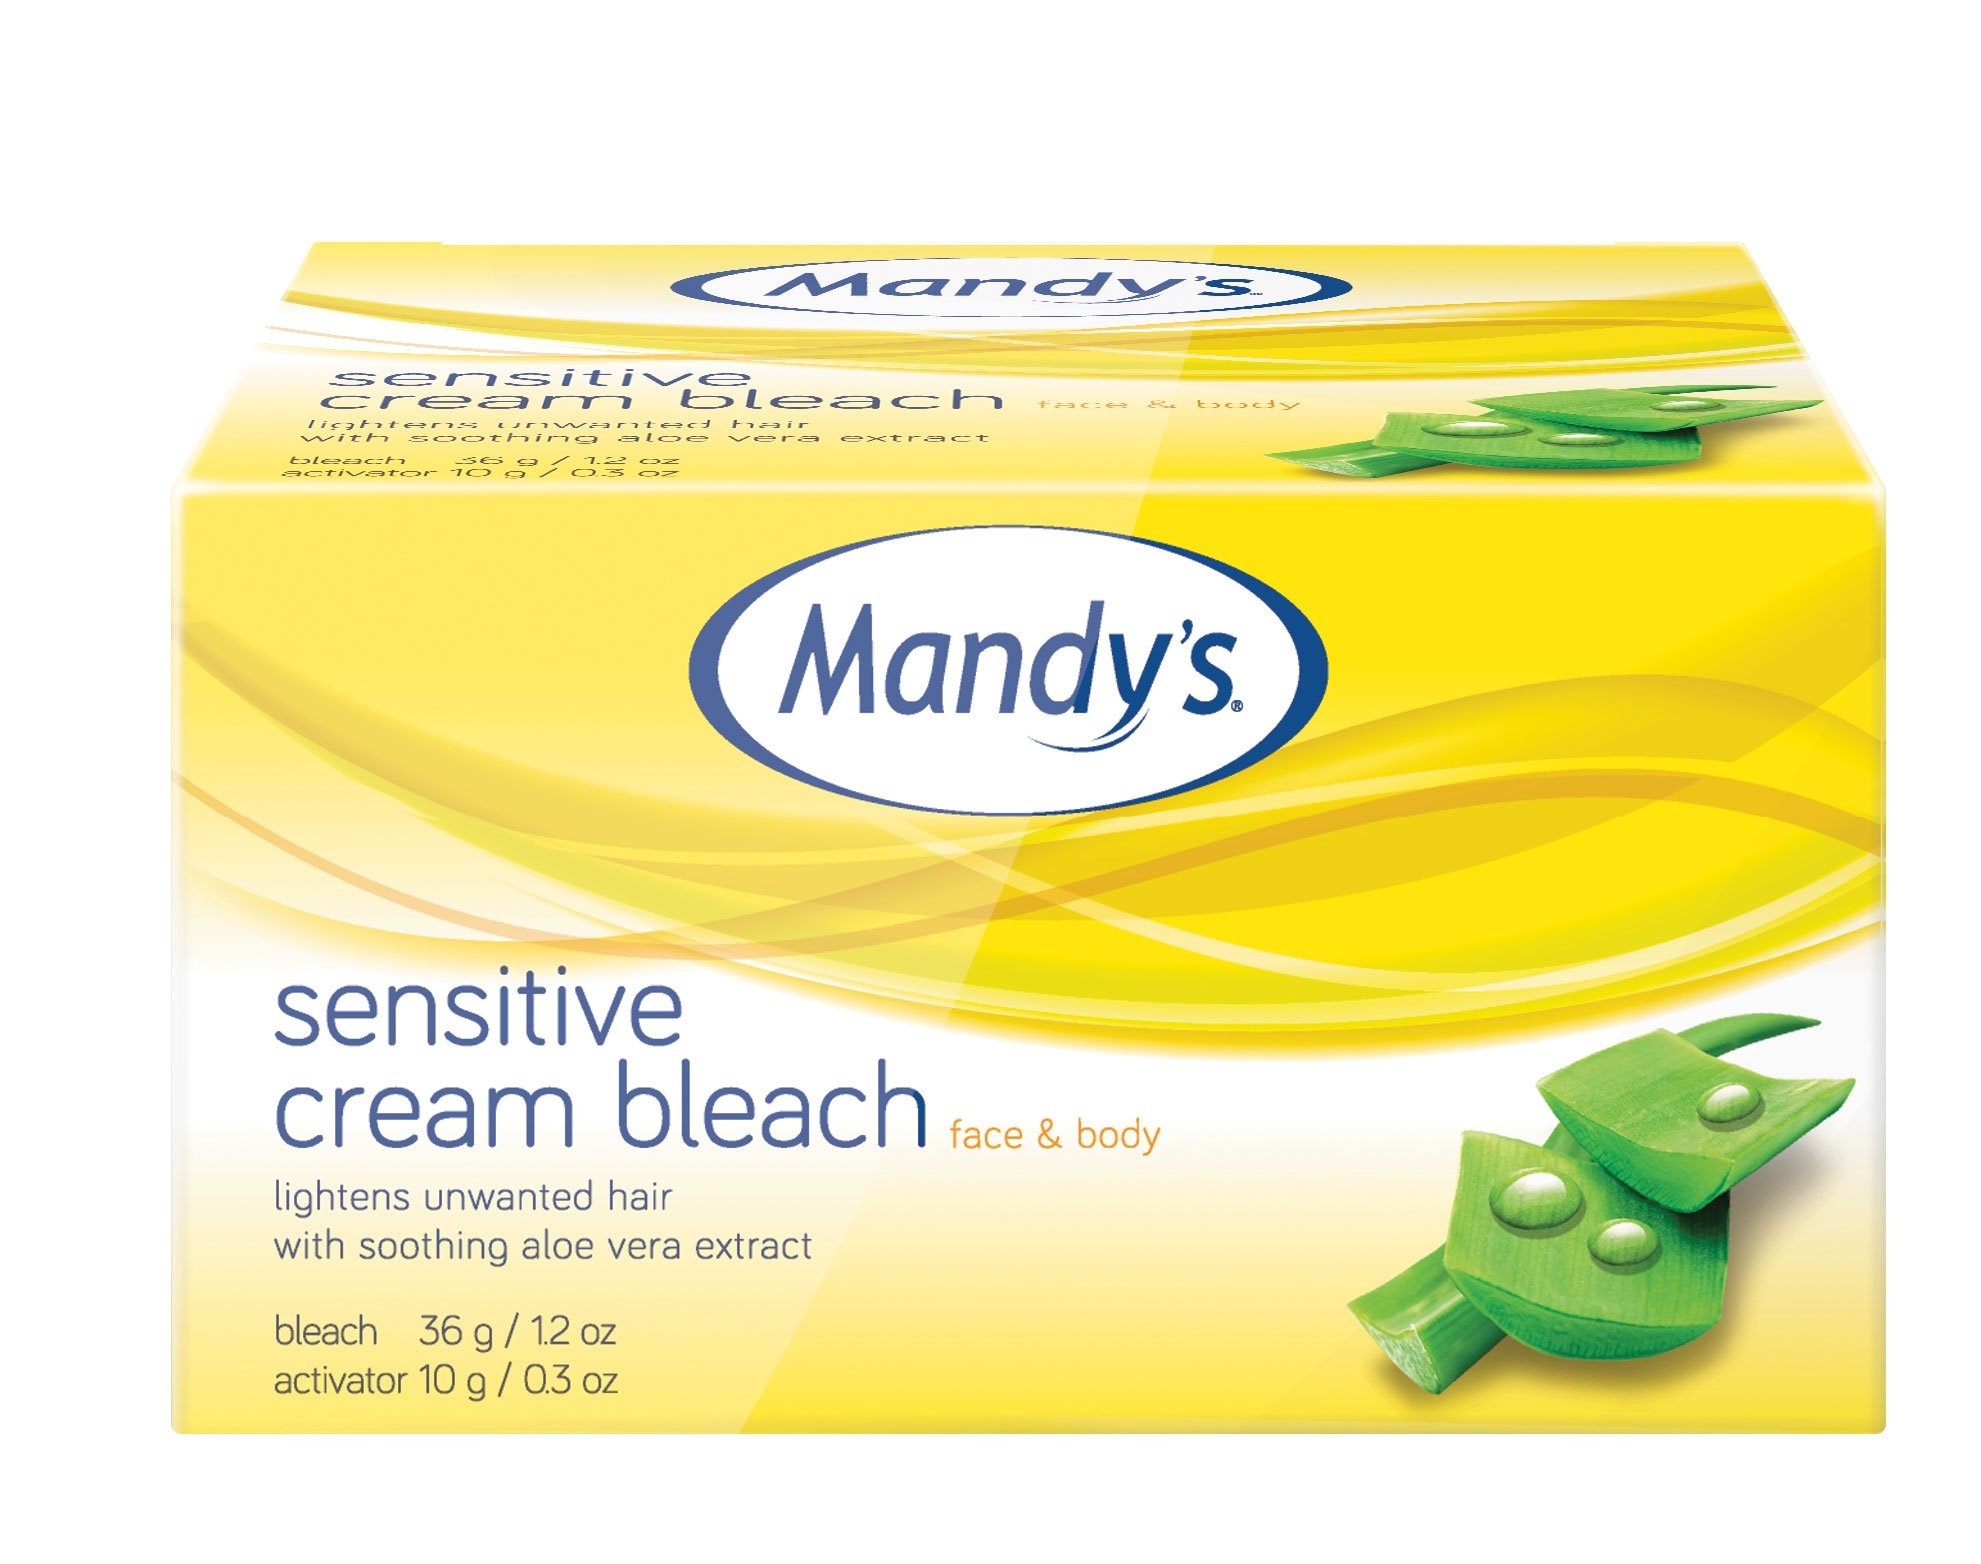 Mandy's Sensitive Cream Bleach